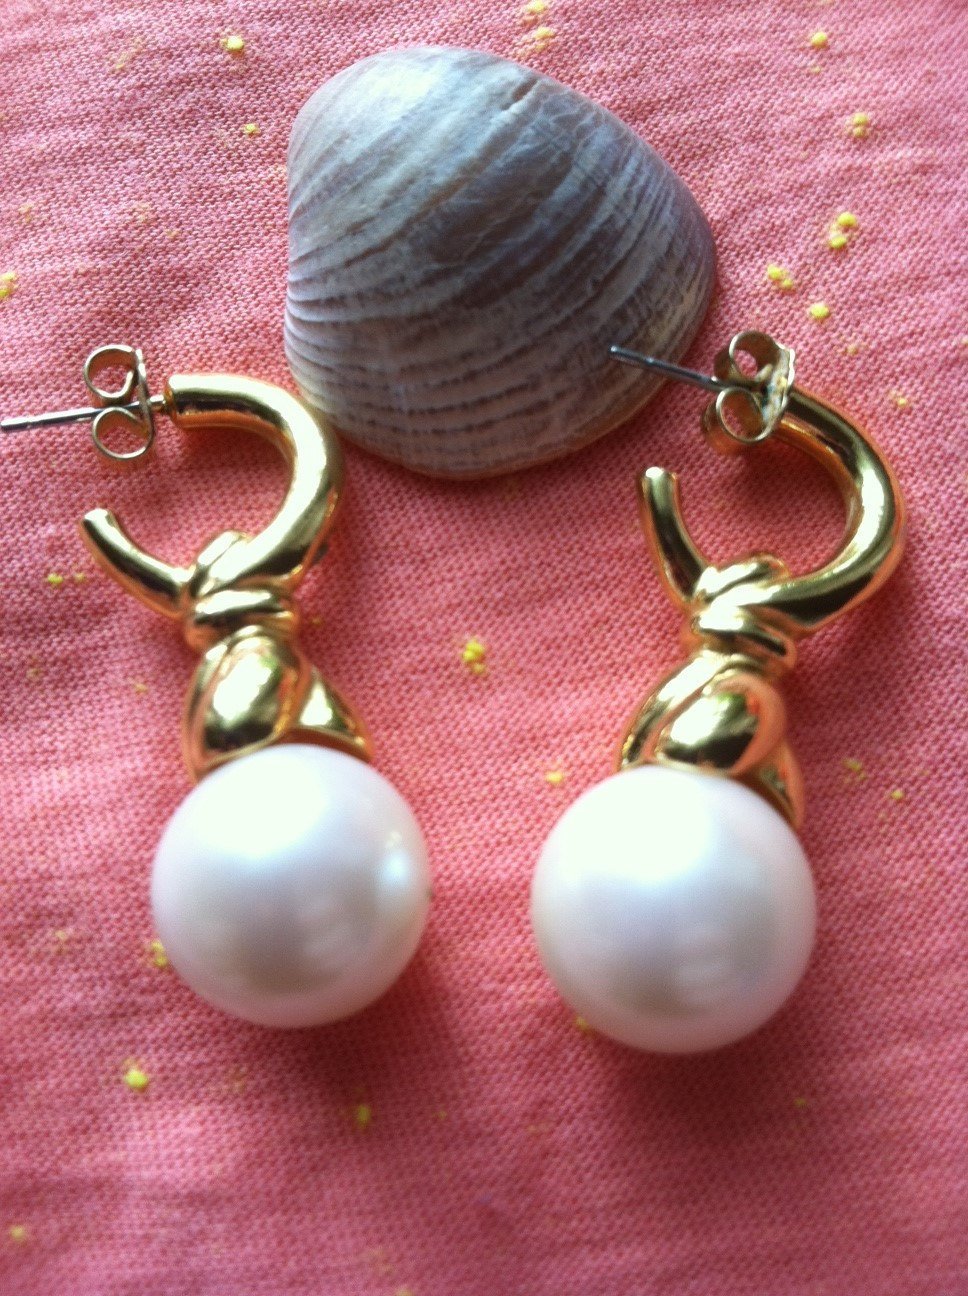 Vintage White Pearl and Gold Tone Swirl Earrings, Pearl Earrings, Swirl Earrings